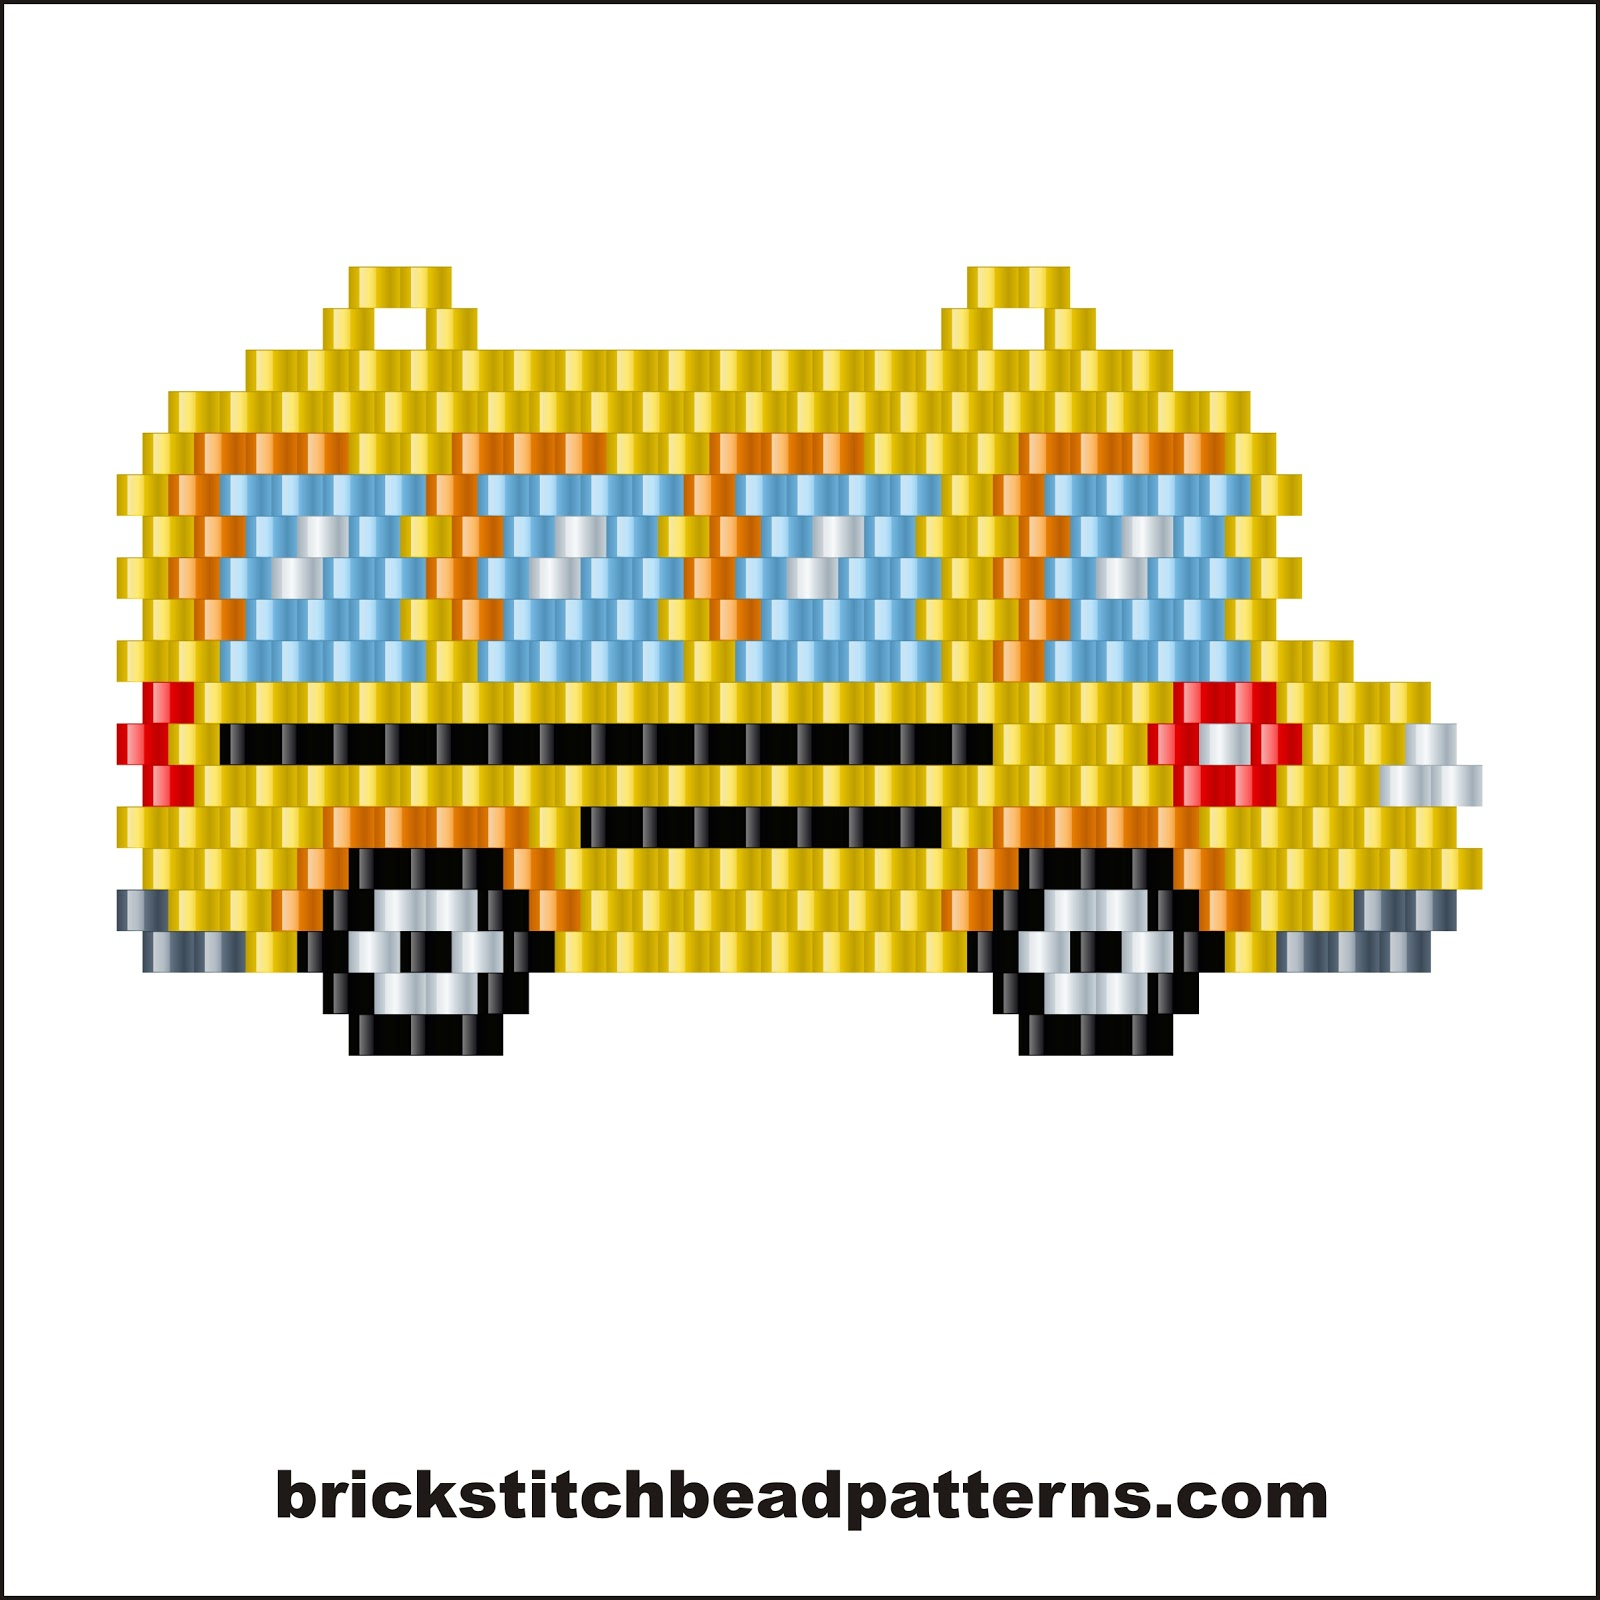 Brick Stitch Bead Patterns Journal: School Bus Earring Or Pendent - Pony Bead Patterns Free Printable